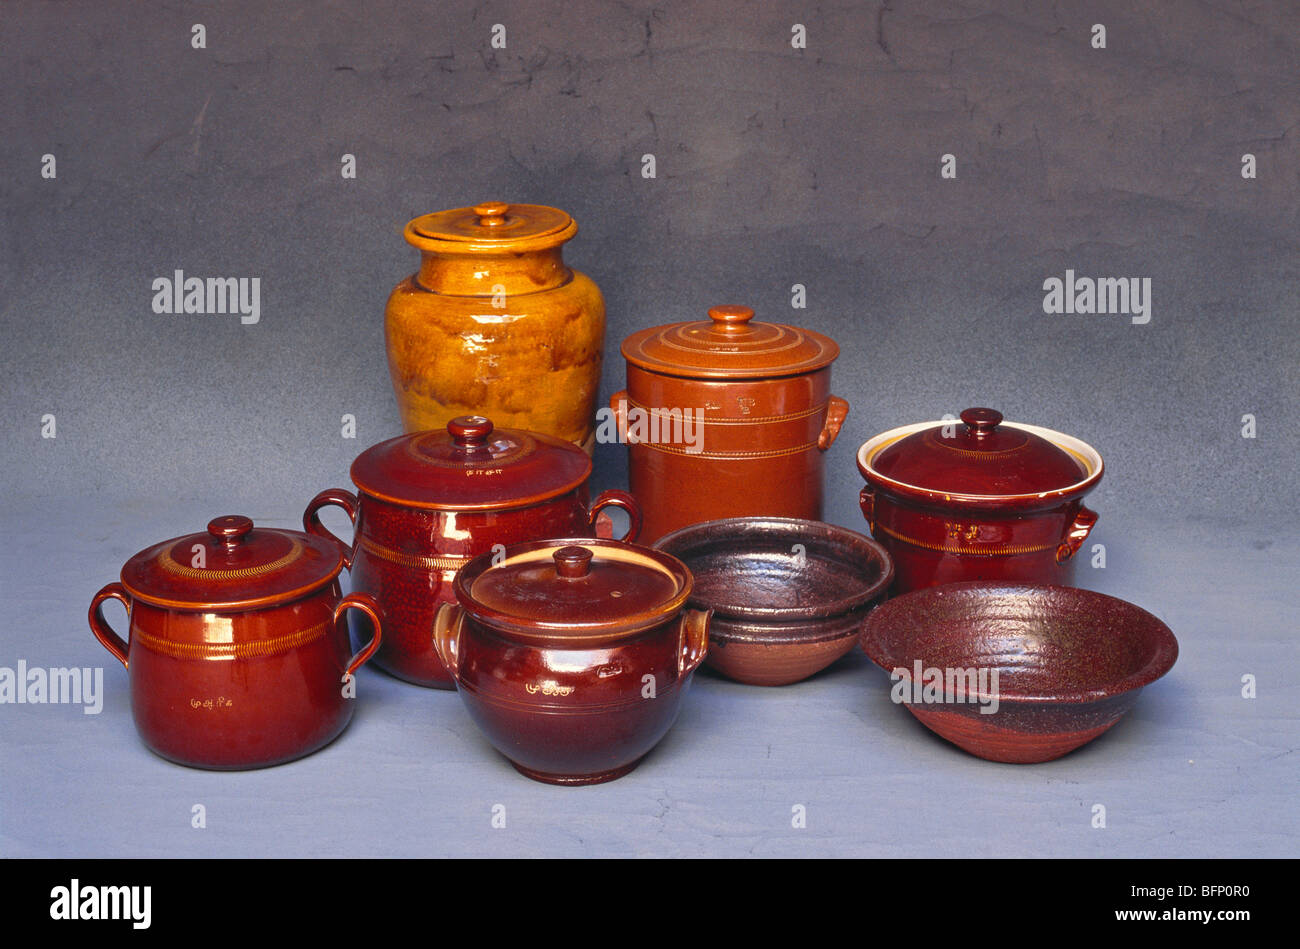 MAA 62249 : Ceramic clay vessels & containers ; Chettinad ; Tamil Nadu ; India - Stock Image